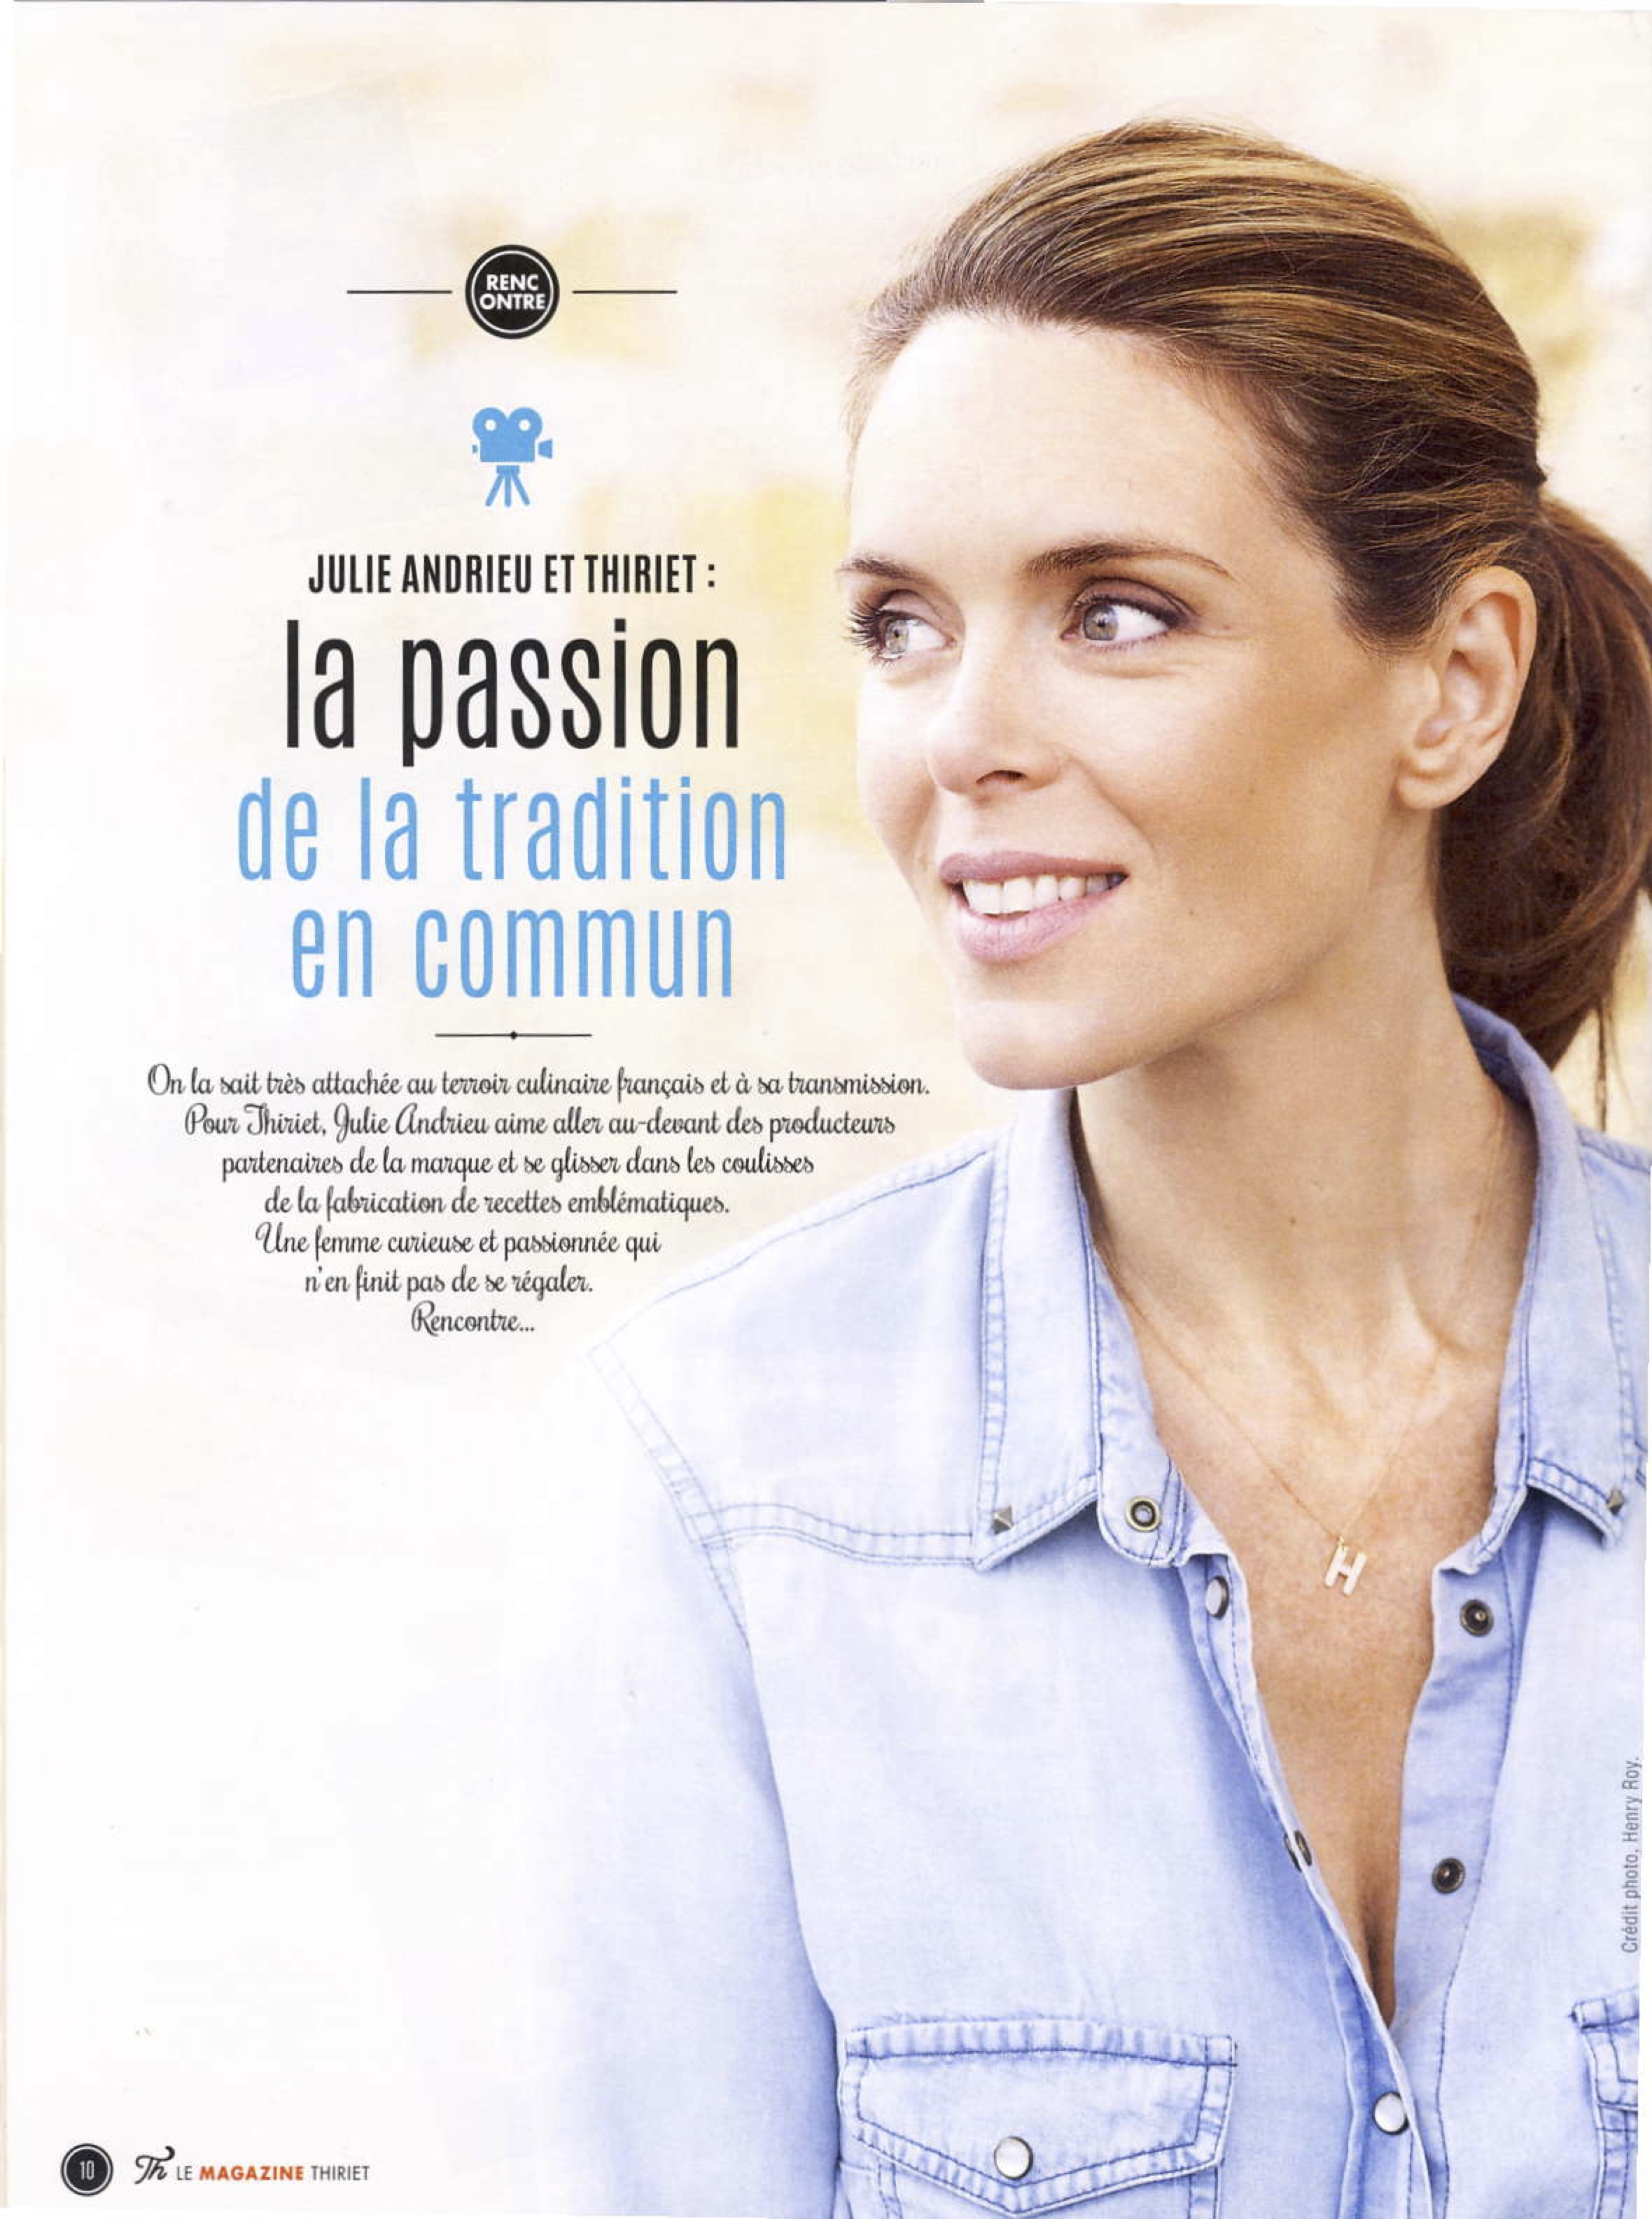 Julie Andrieu et Thiriet : La passion de la tradition en commun – Le Mag Thiriet